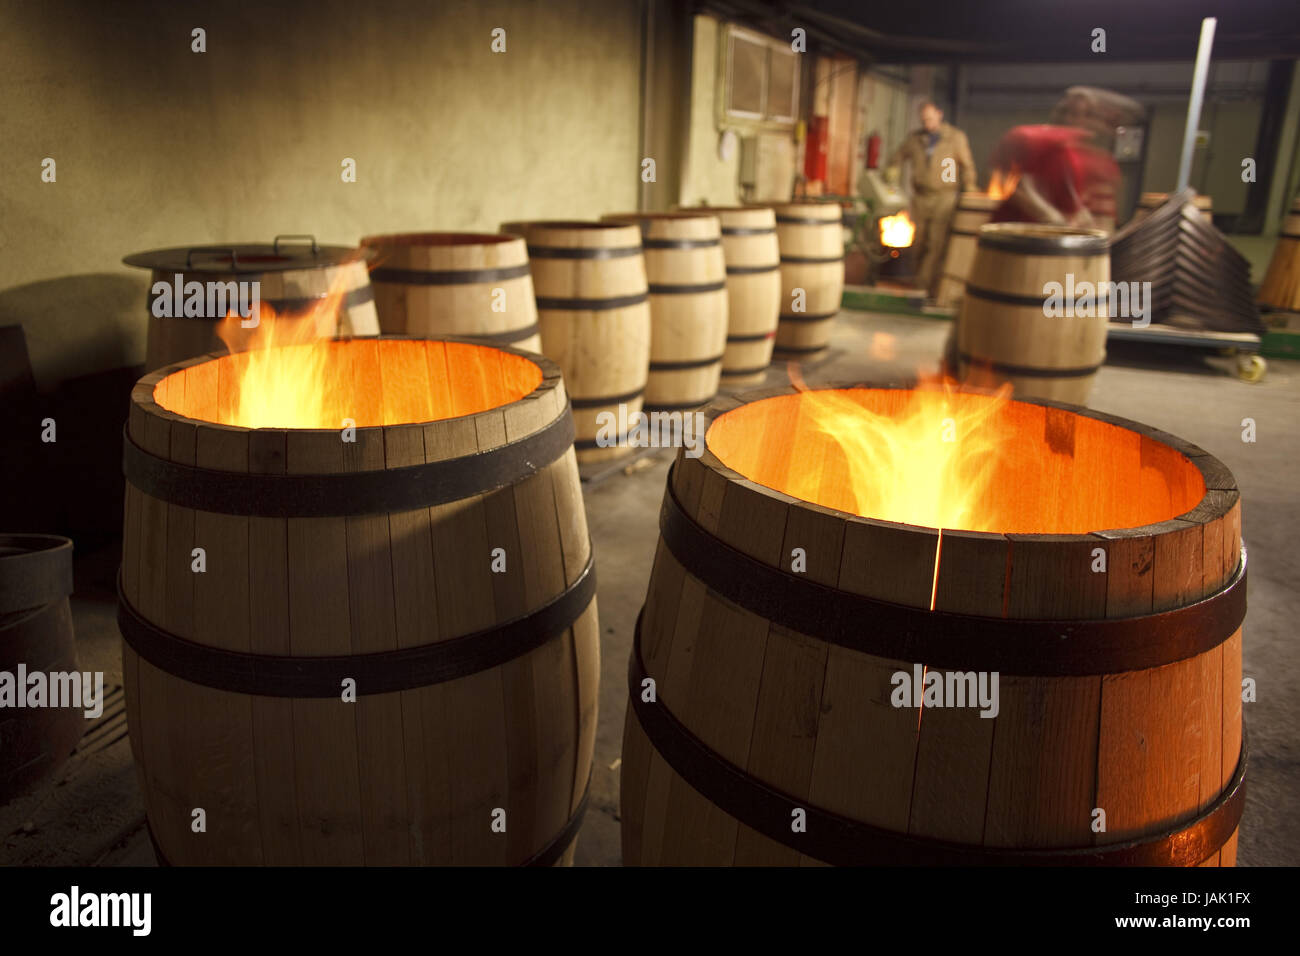 Spain,Navarre,Monteagudo,cooperage,wine,men,barrels,produce,fire